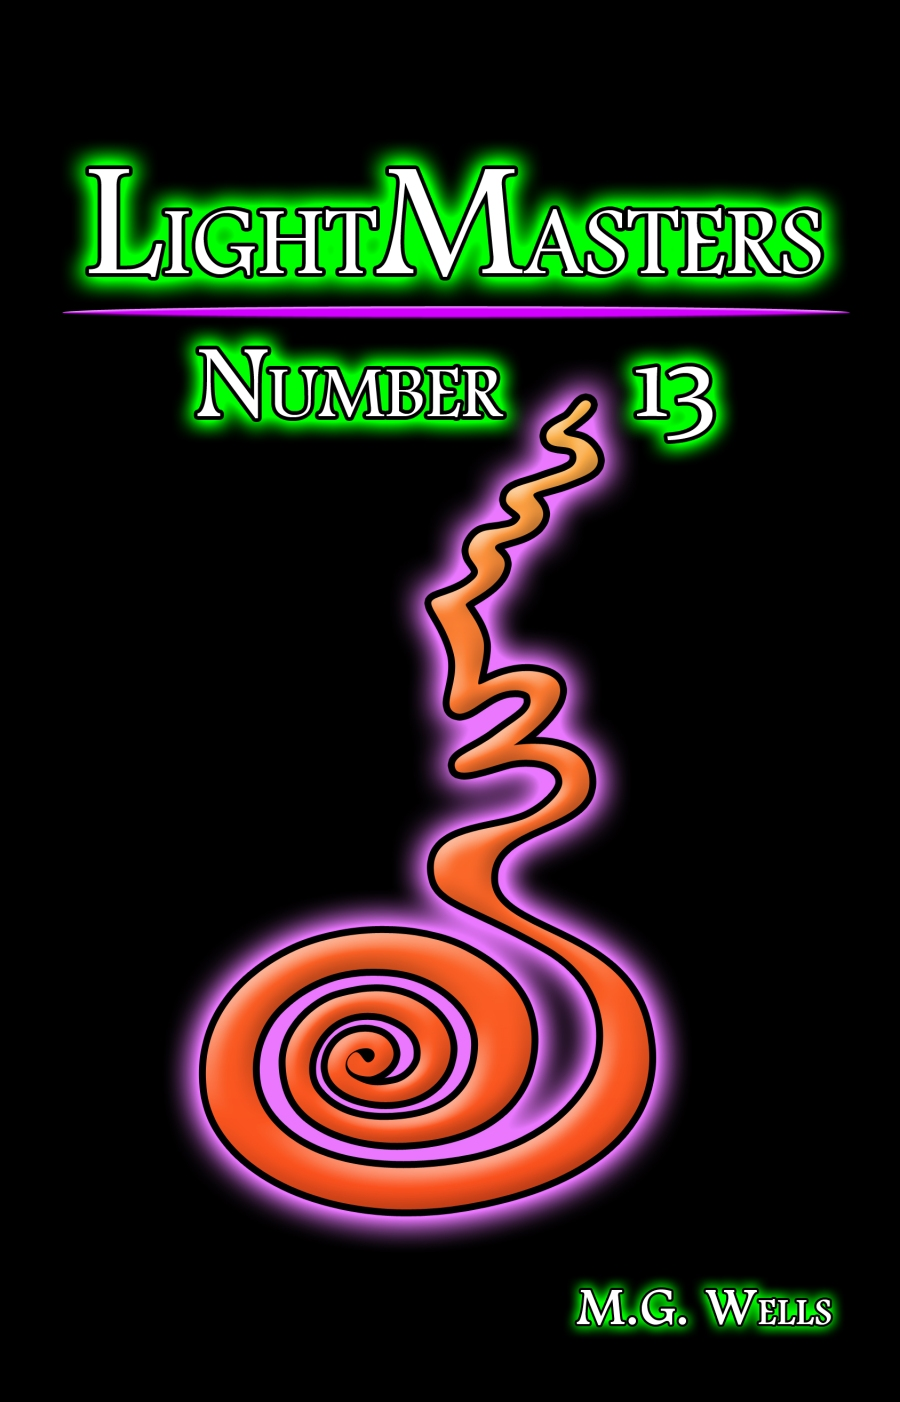 LightMasters_Number_13_by_MG_WELLS_Book_Cover